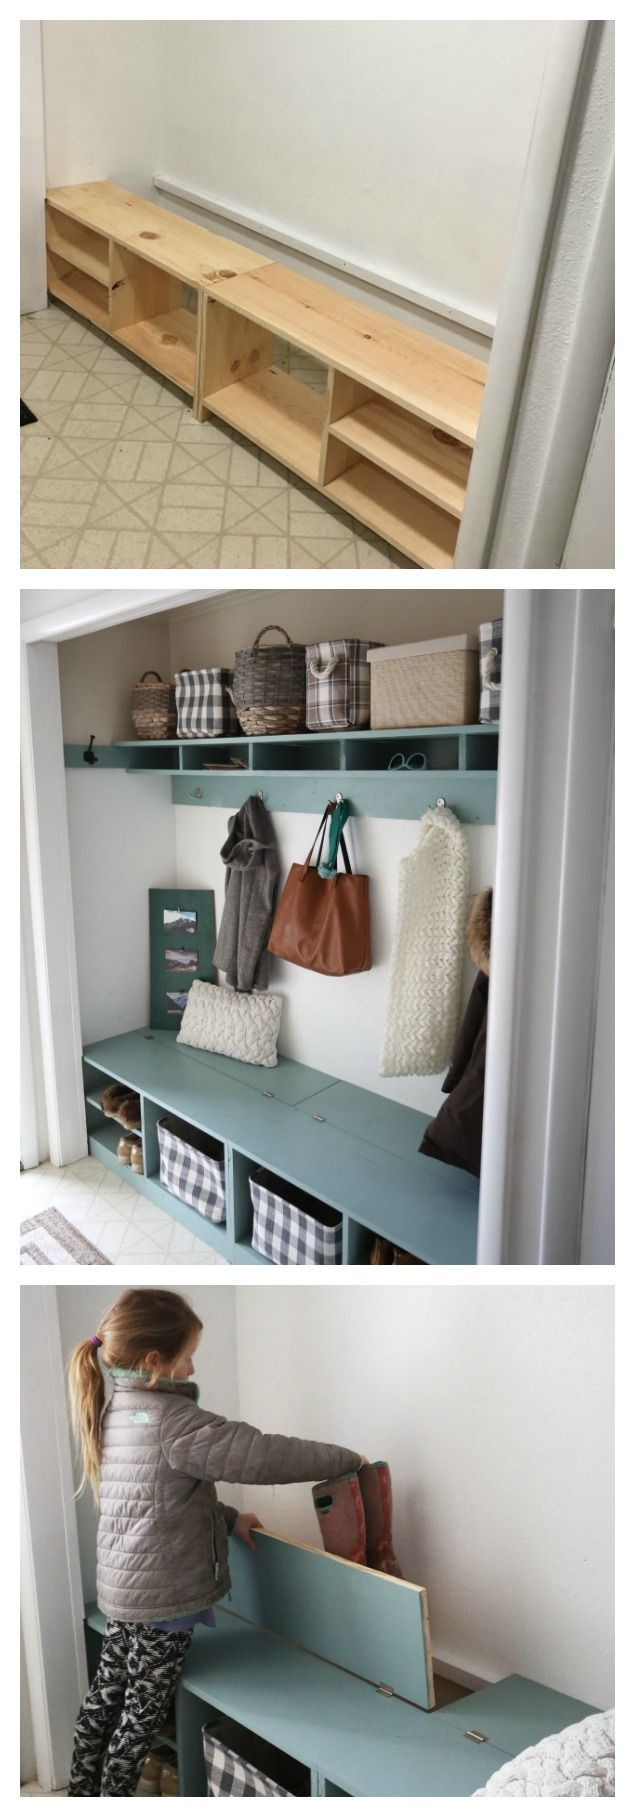 Ana White BEHRBOX Mudroom in a